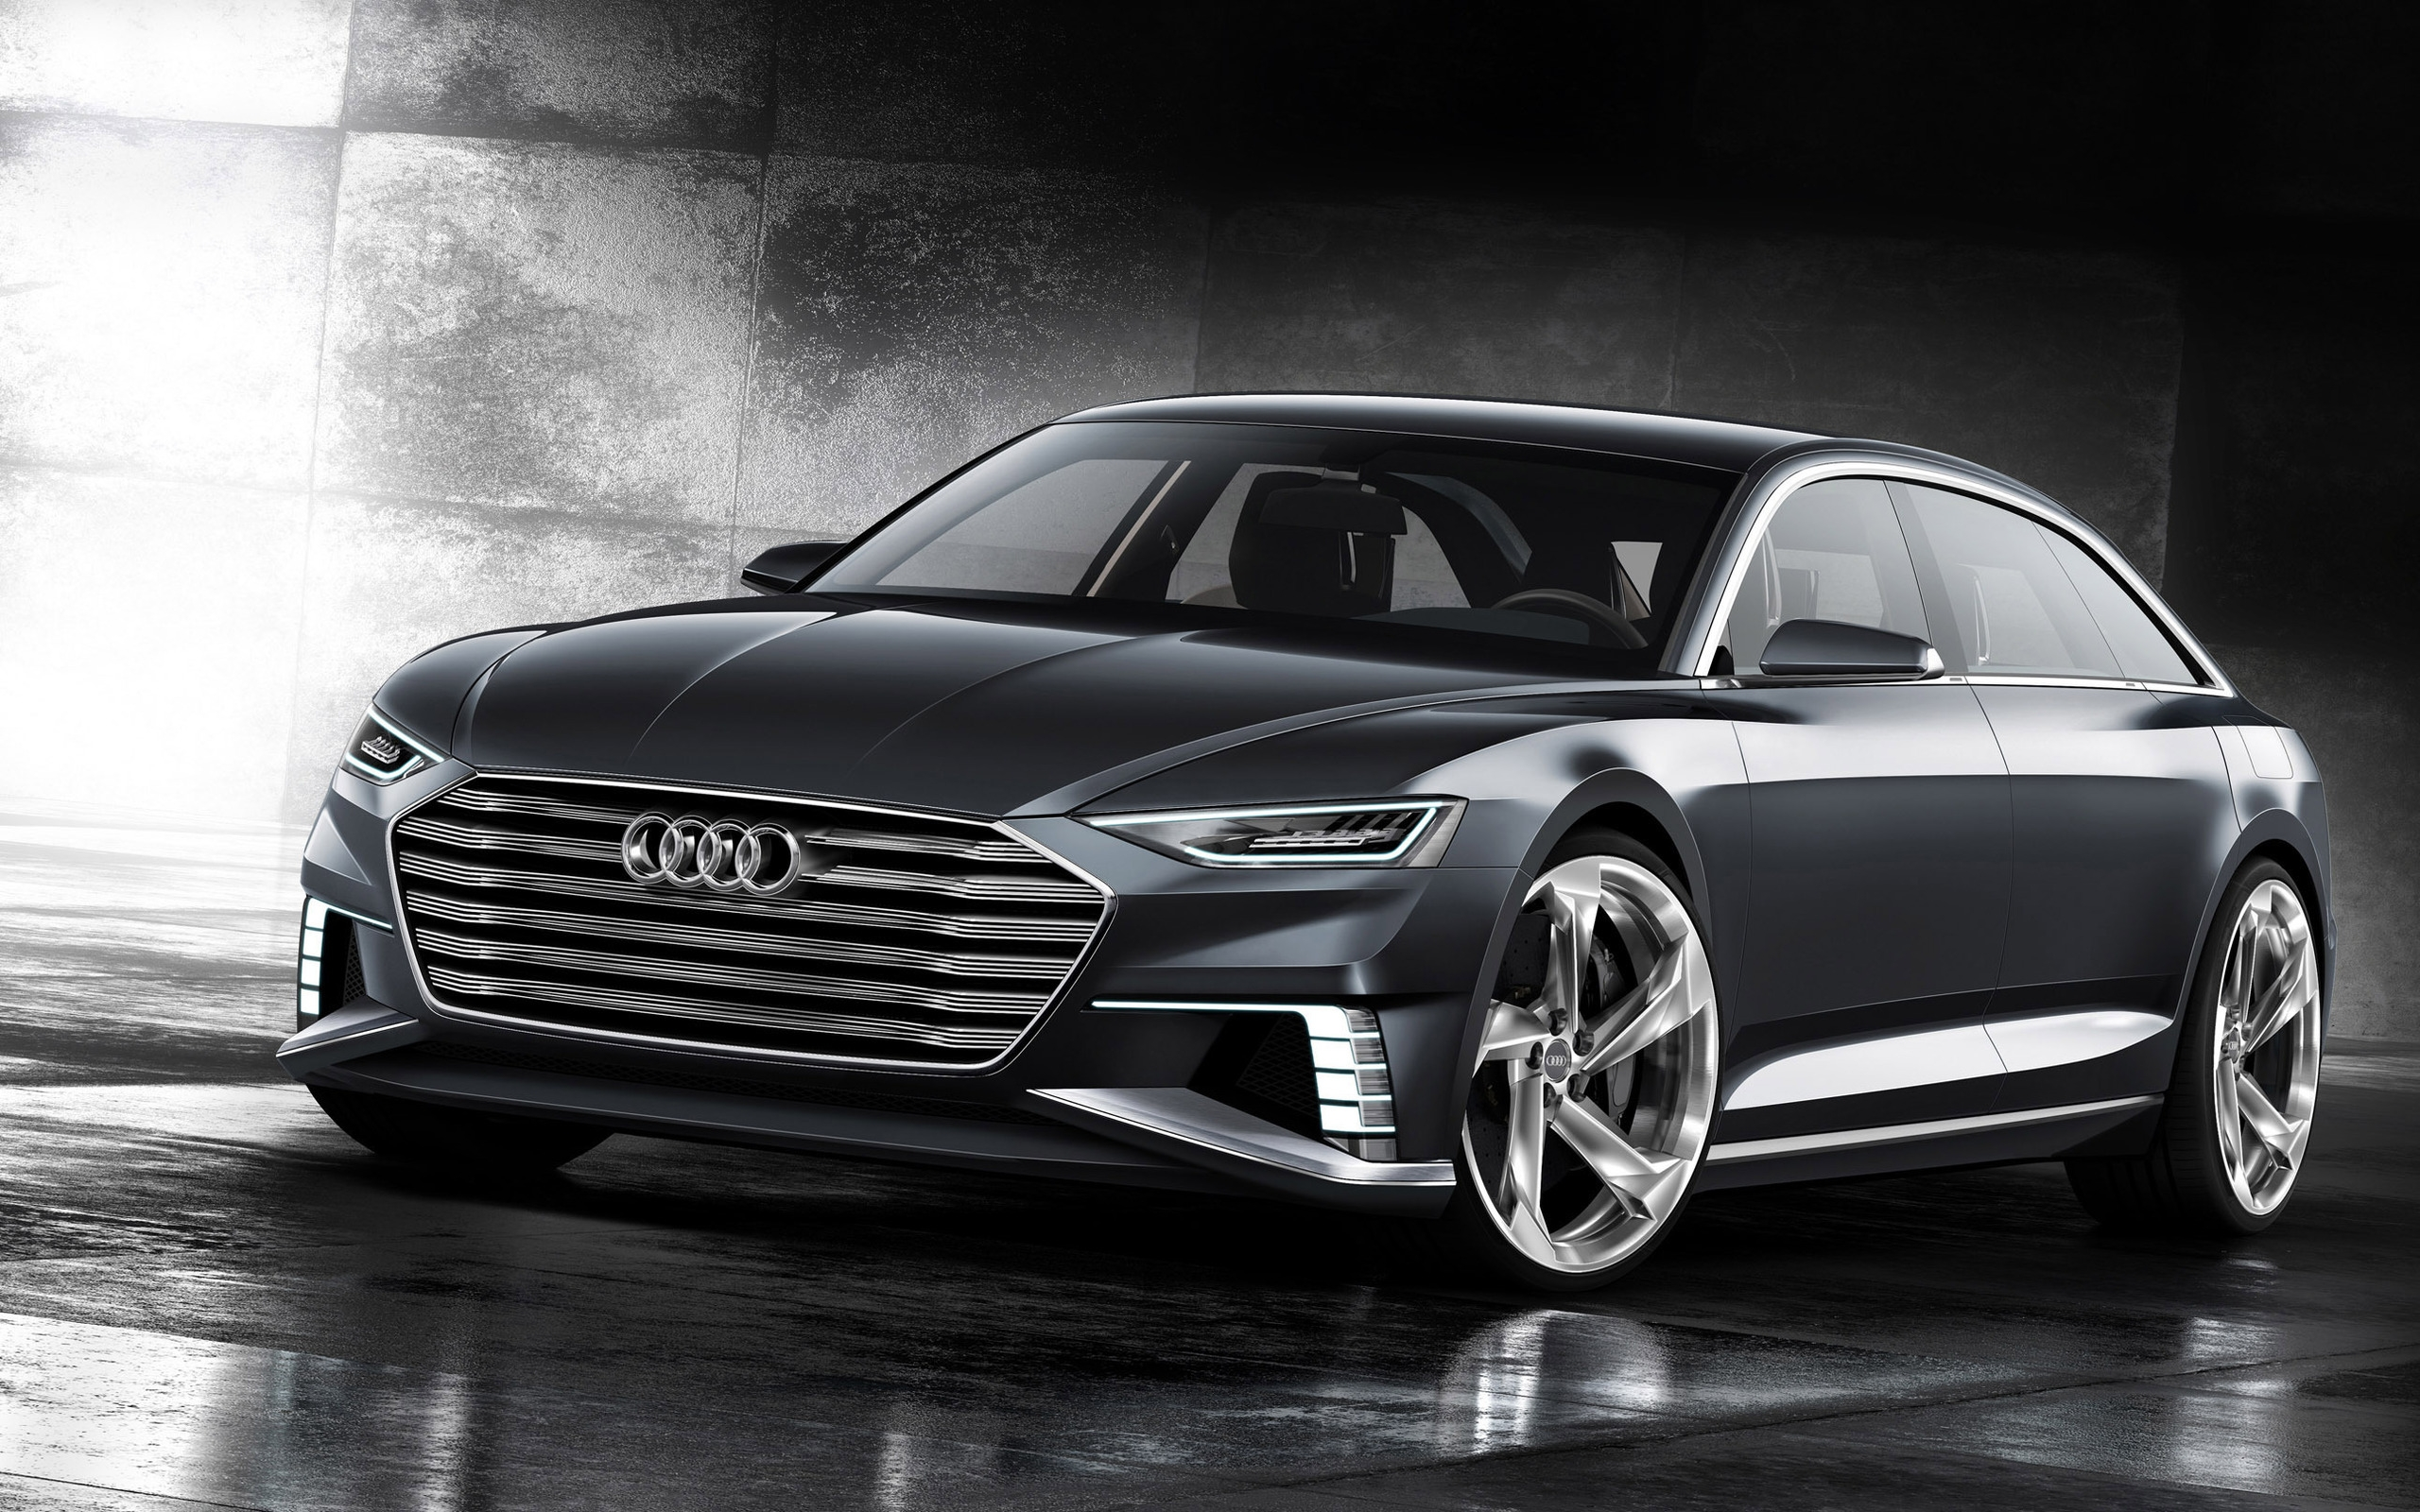 2015 Audi Prologue Avant Concept for 2560 x 1600 widescreen resolution